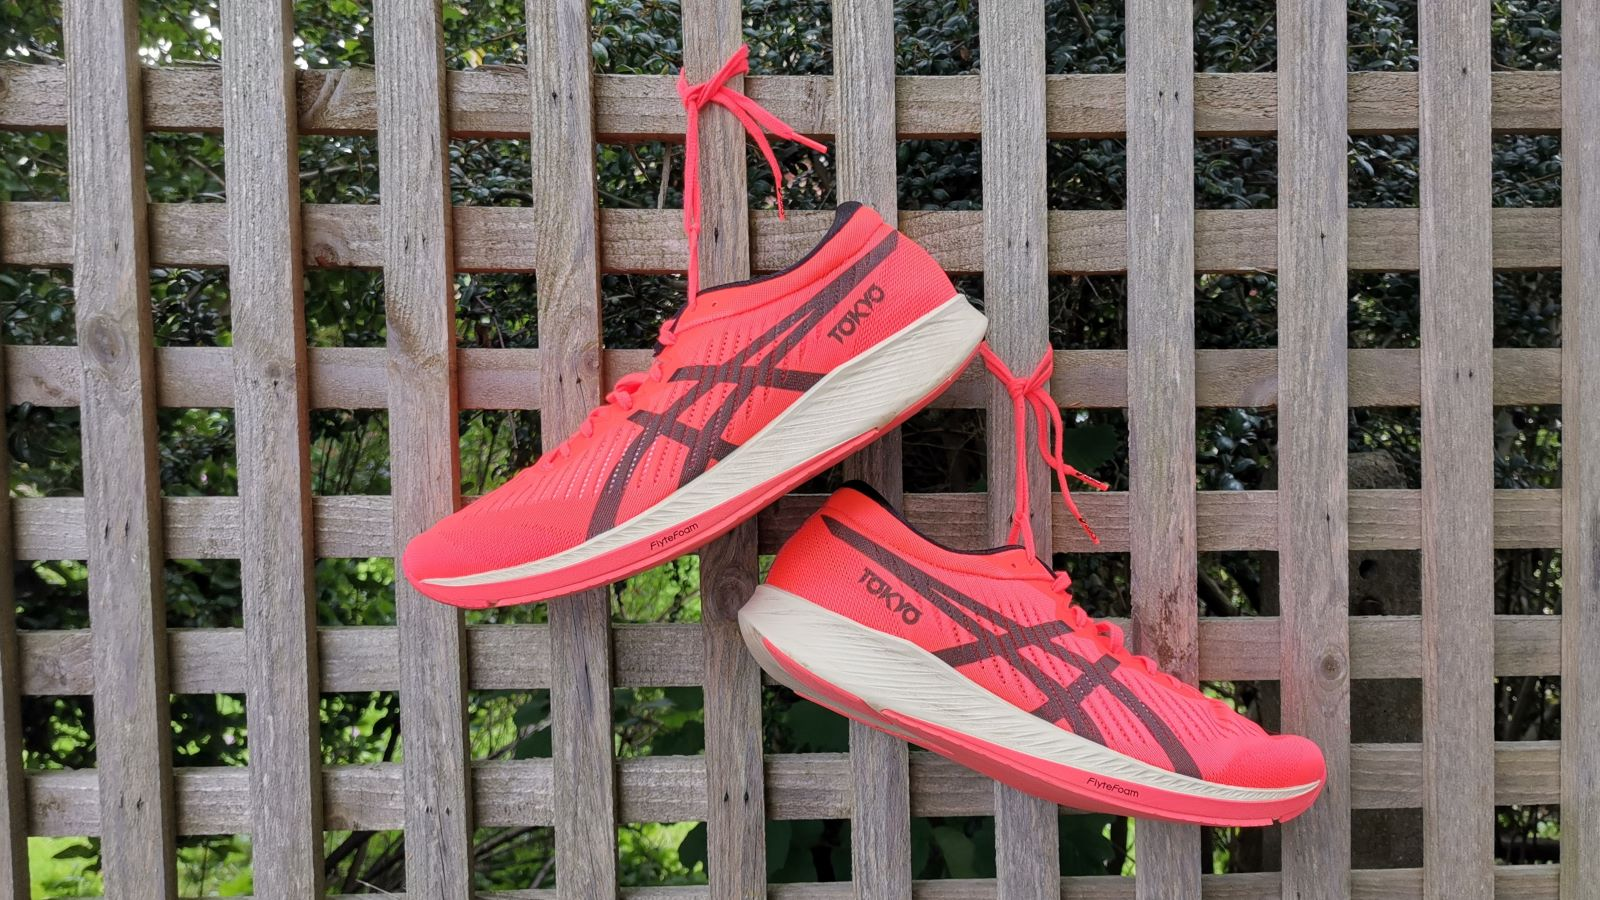 Asics Metaracer review: this is the